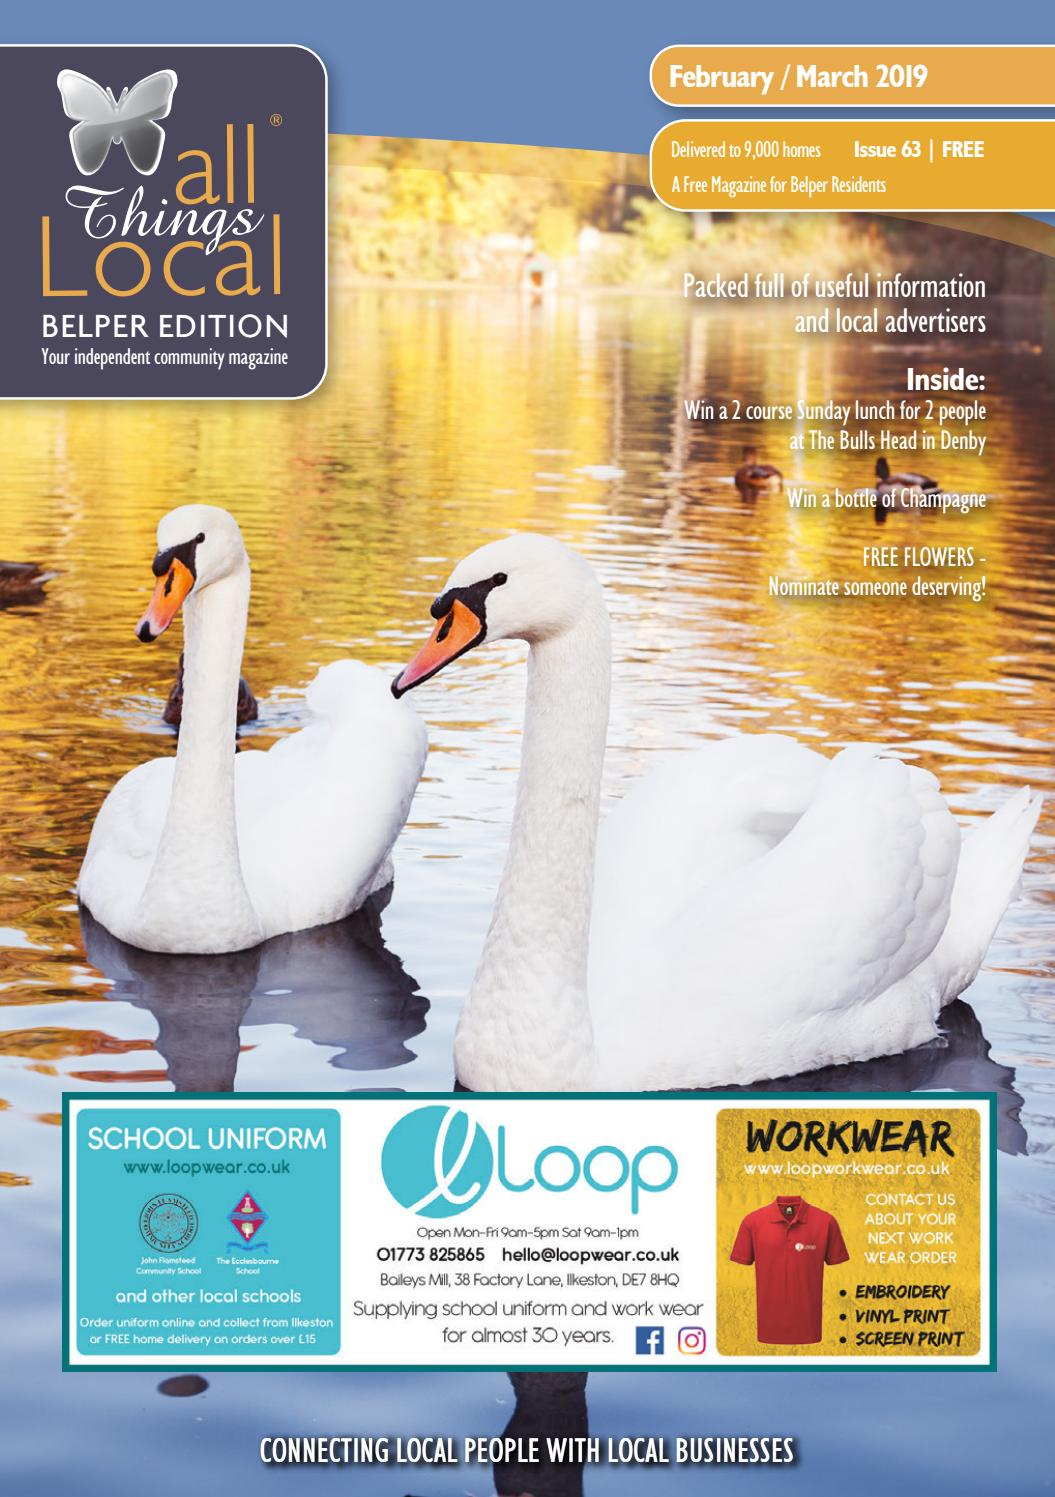 All Things Local - Belper Edition - February/March 2019 by